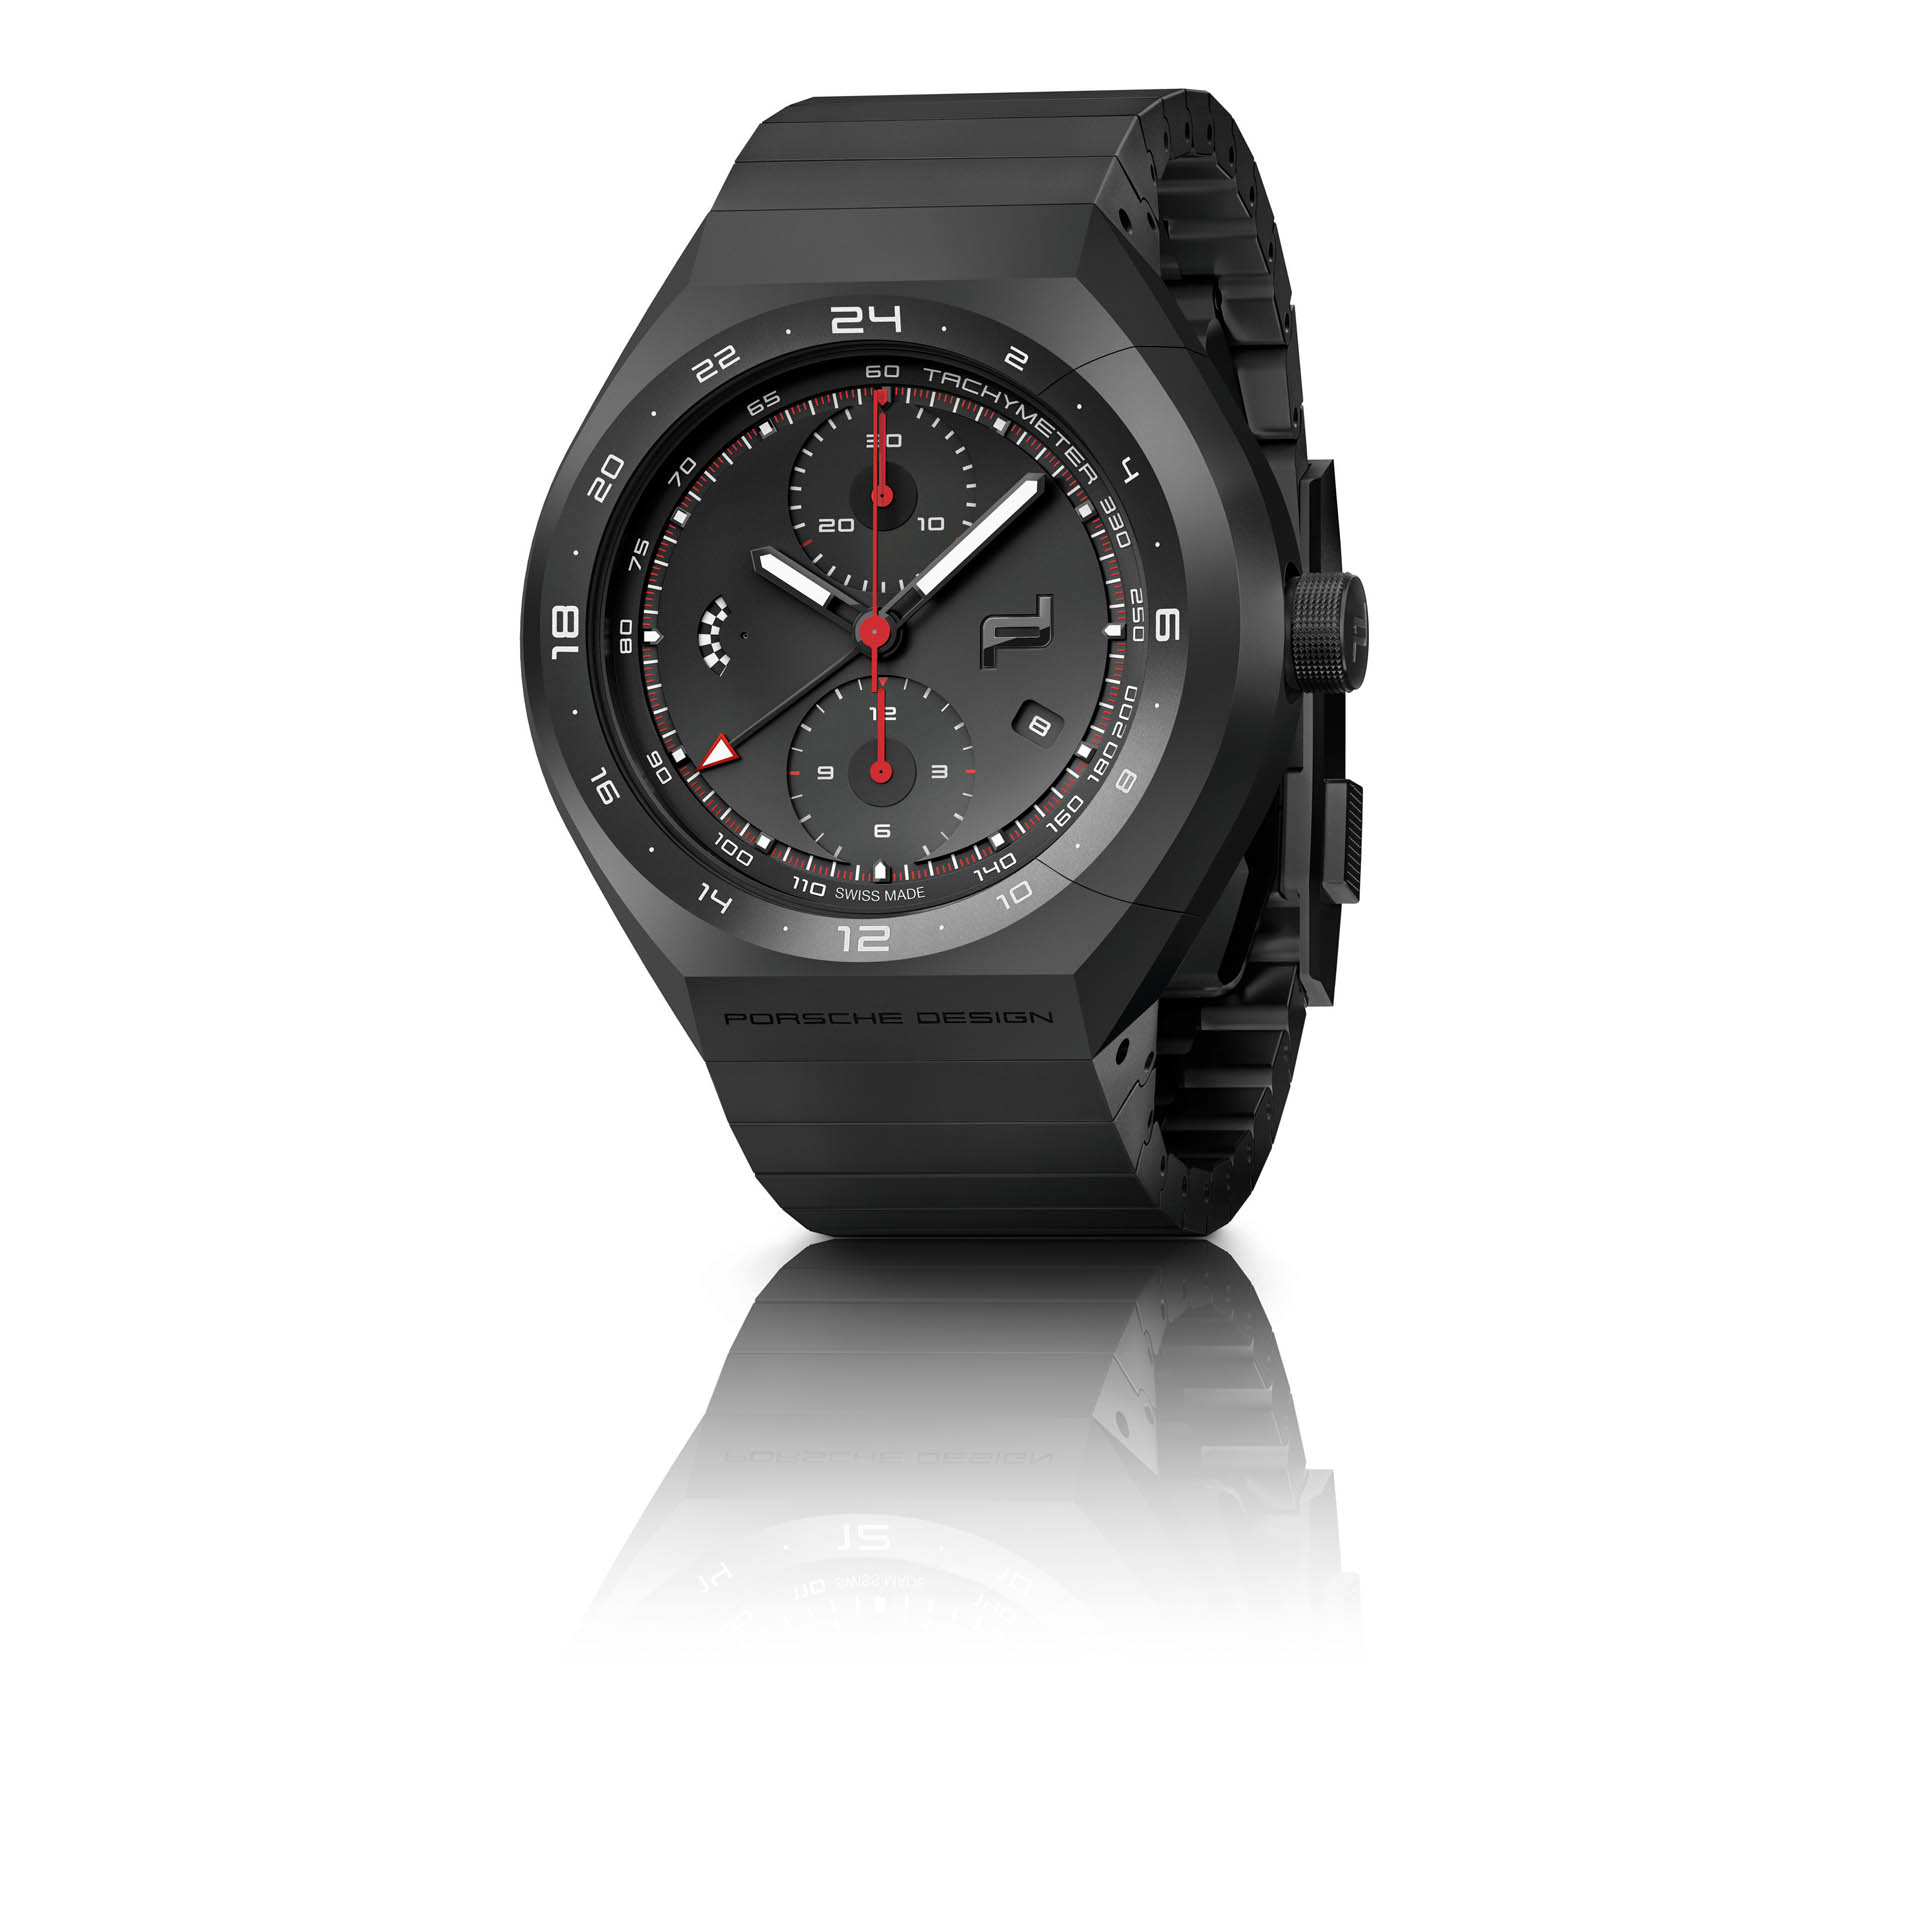 monobloc_actuator_24h_chronotimer-all-black_2-copy